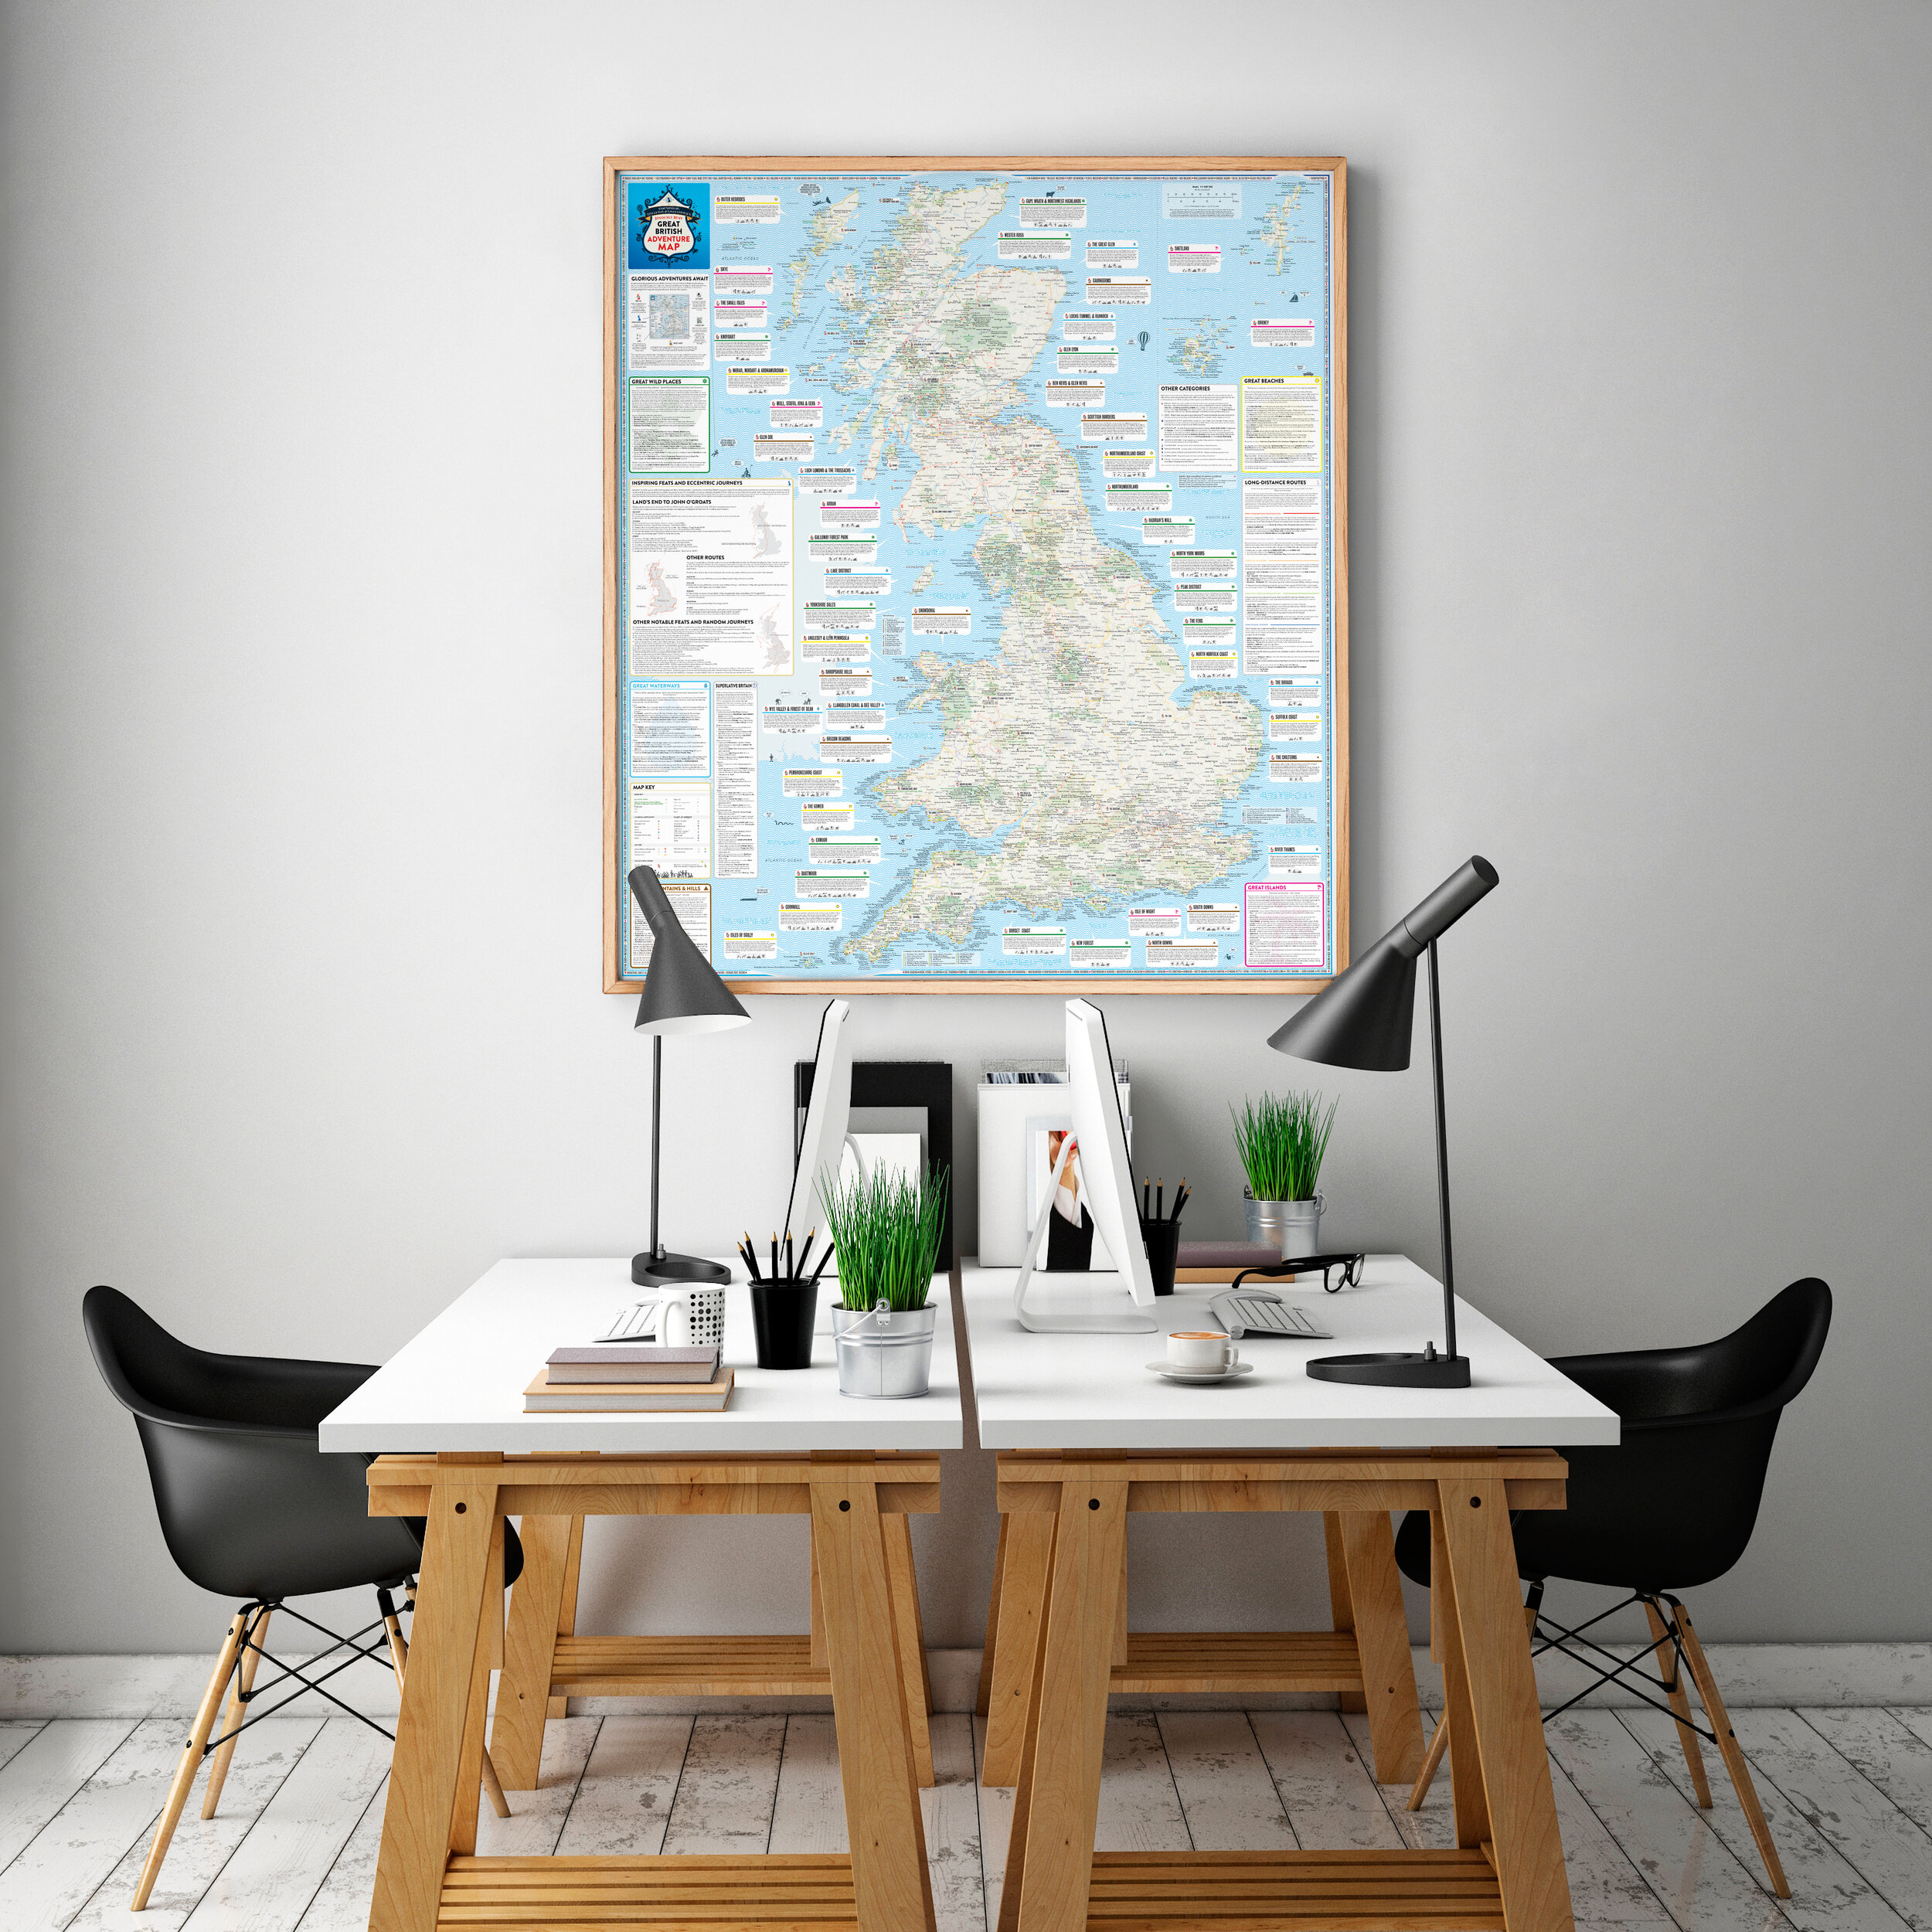 ST&G's Joyously Busy Great British Adventure Map - Framed Office_sRGB_5000px_Sq.jpg